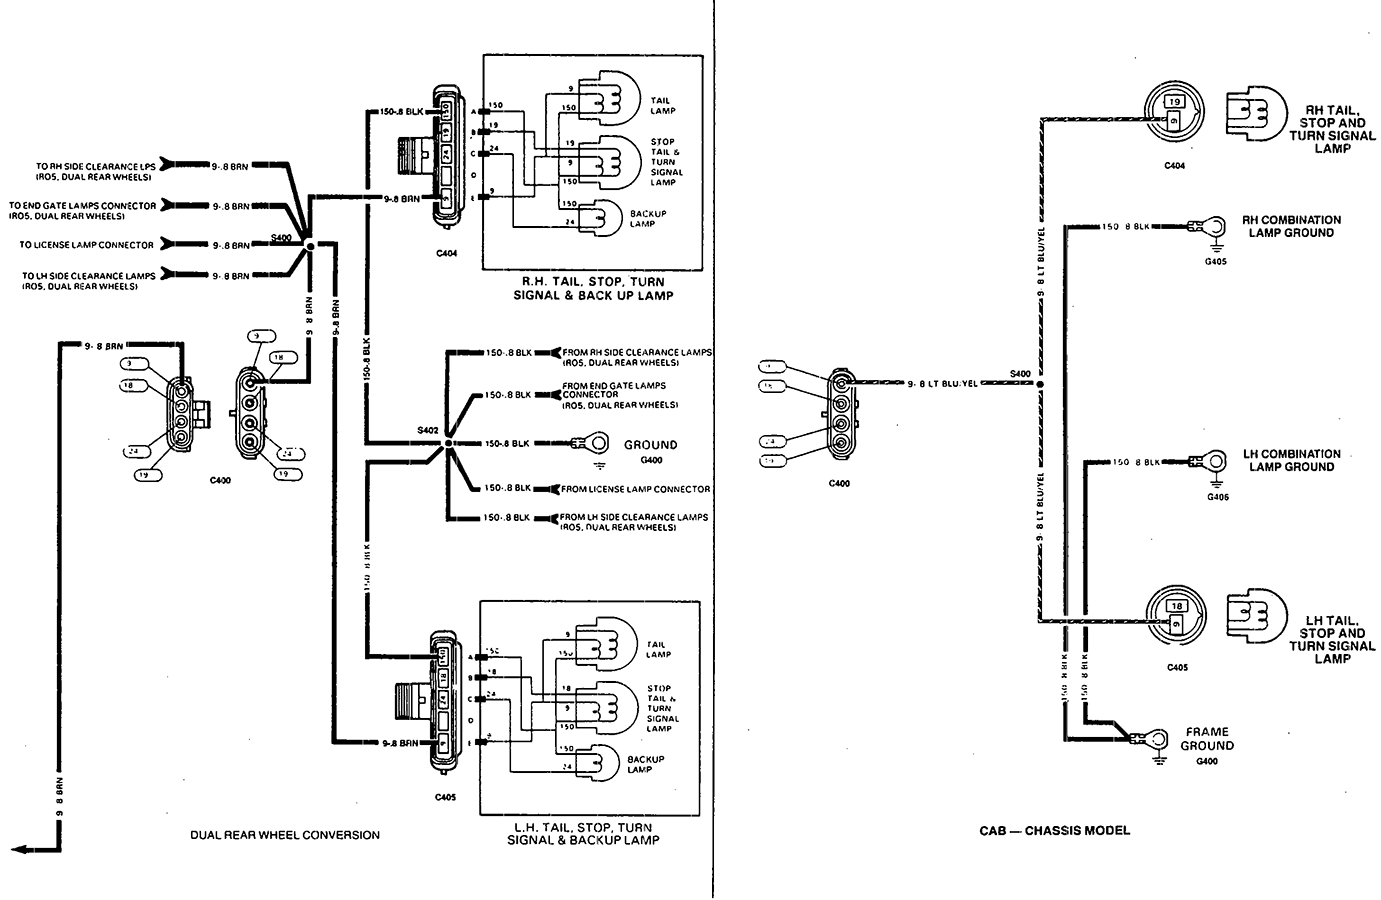 Backup Light Wiring Schematic - Wiring Diagram Data Oreo - Ford Trailer Light Wiring Diagram